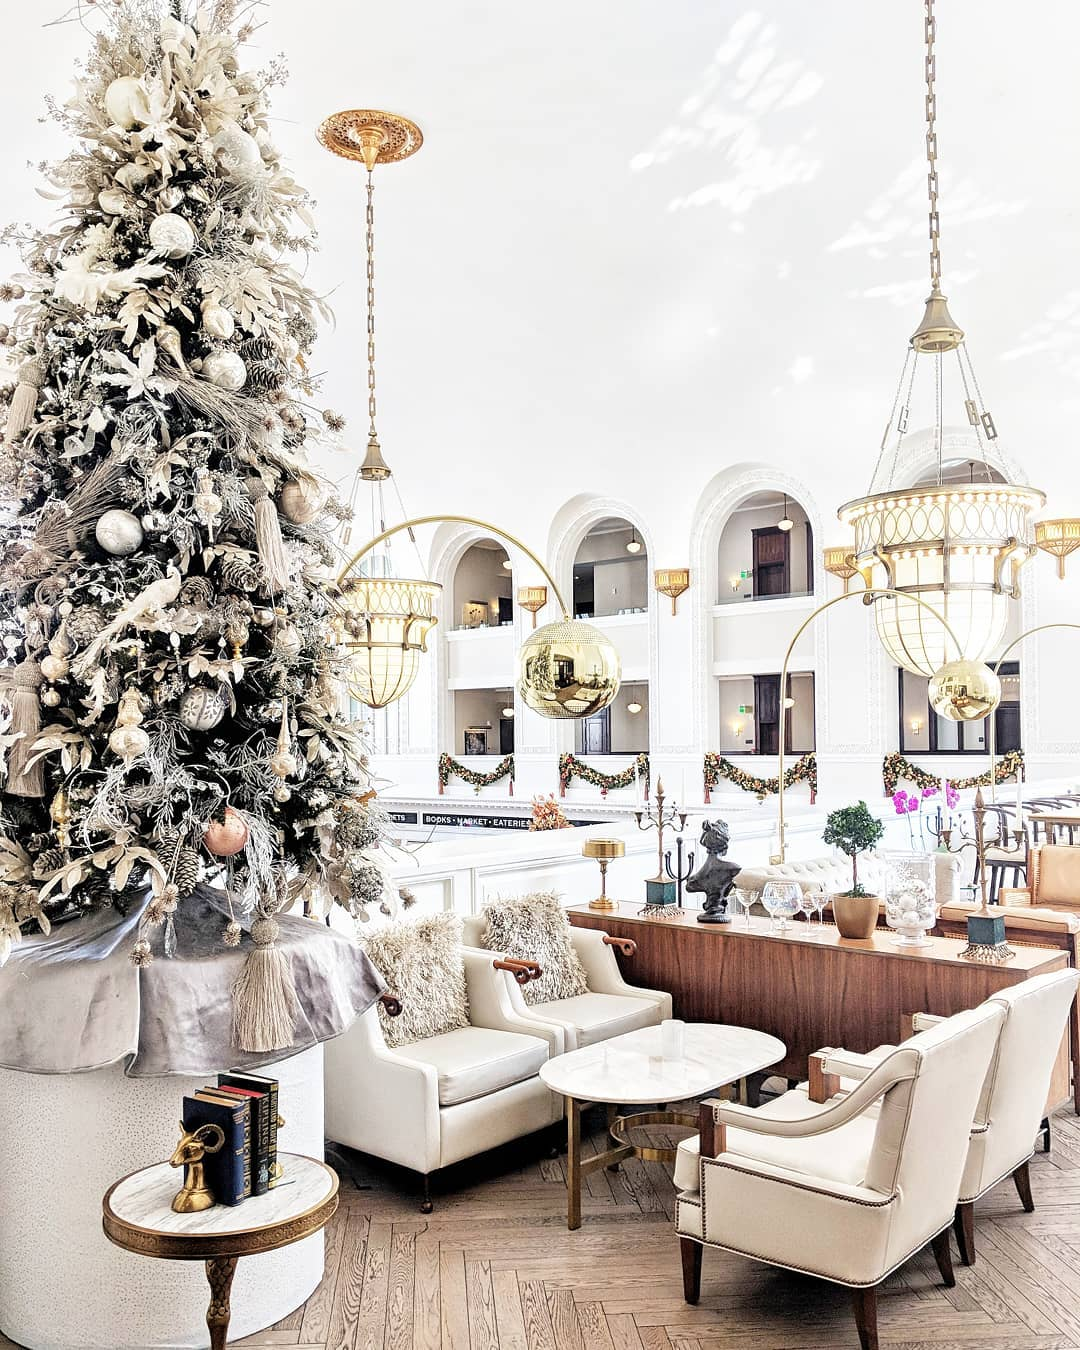 10 Festive Destinations for Holiday Eating and Drinking